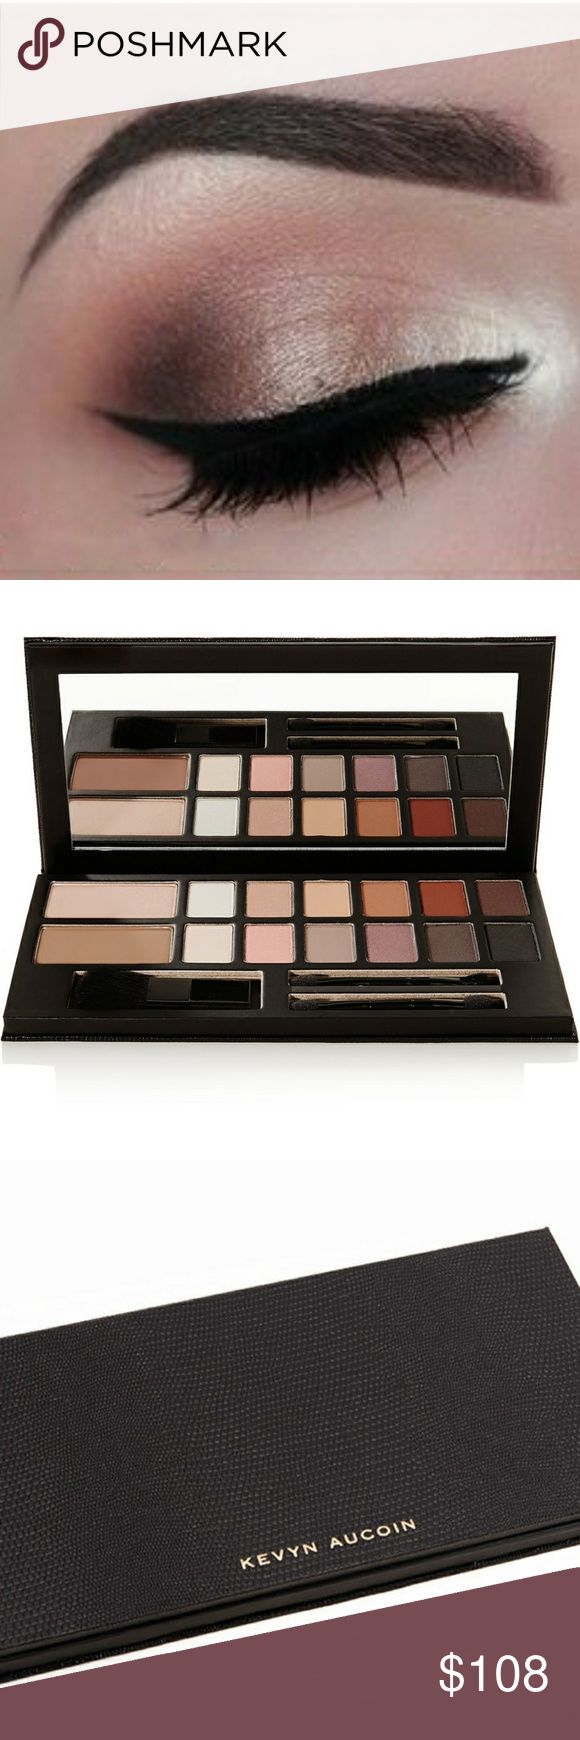 🔶HOST PICK🔶Kevyn Aucoin The Legacy Palette An exclusive palette that includes classic essentials for sculpting, highlighting, and defining face, eyes, and brows. Use the Sculpting and Celestial powder to accentuate your natural beauty. Then define eyes with 12 classic eyeshadow shades. Stunning pigmentation, universal shades, pleasantly stable consistency and classy packaging!   This is a stunning purchase, and an investment for any serious makeup artist or beauty addict who loves high-end…